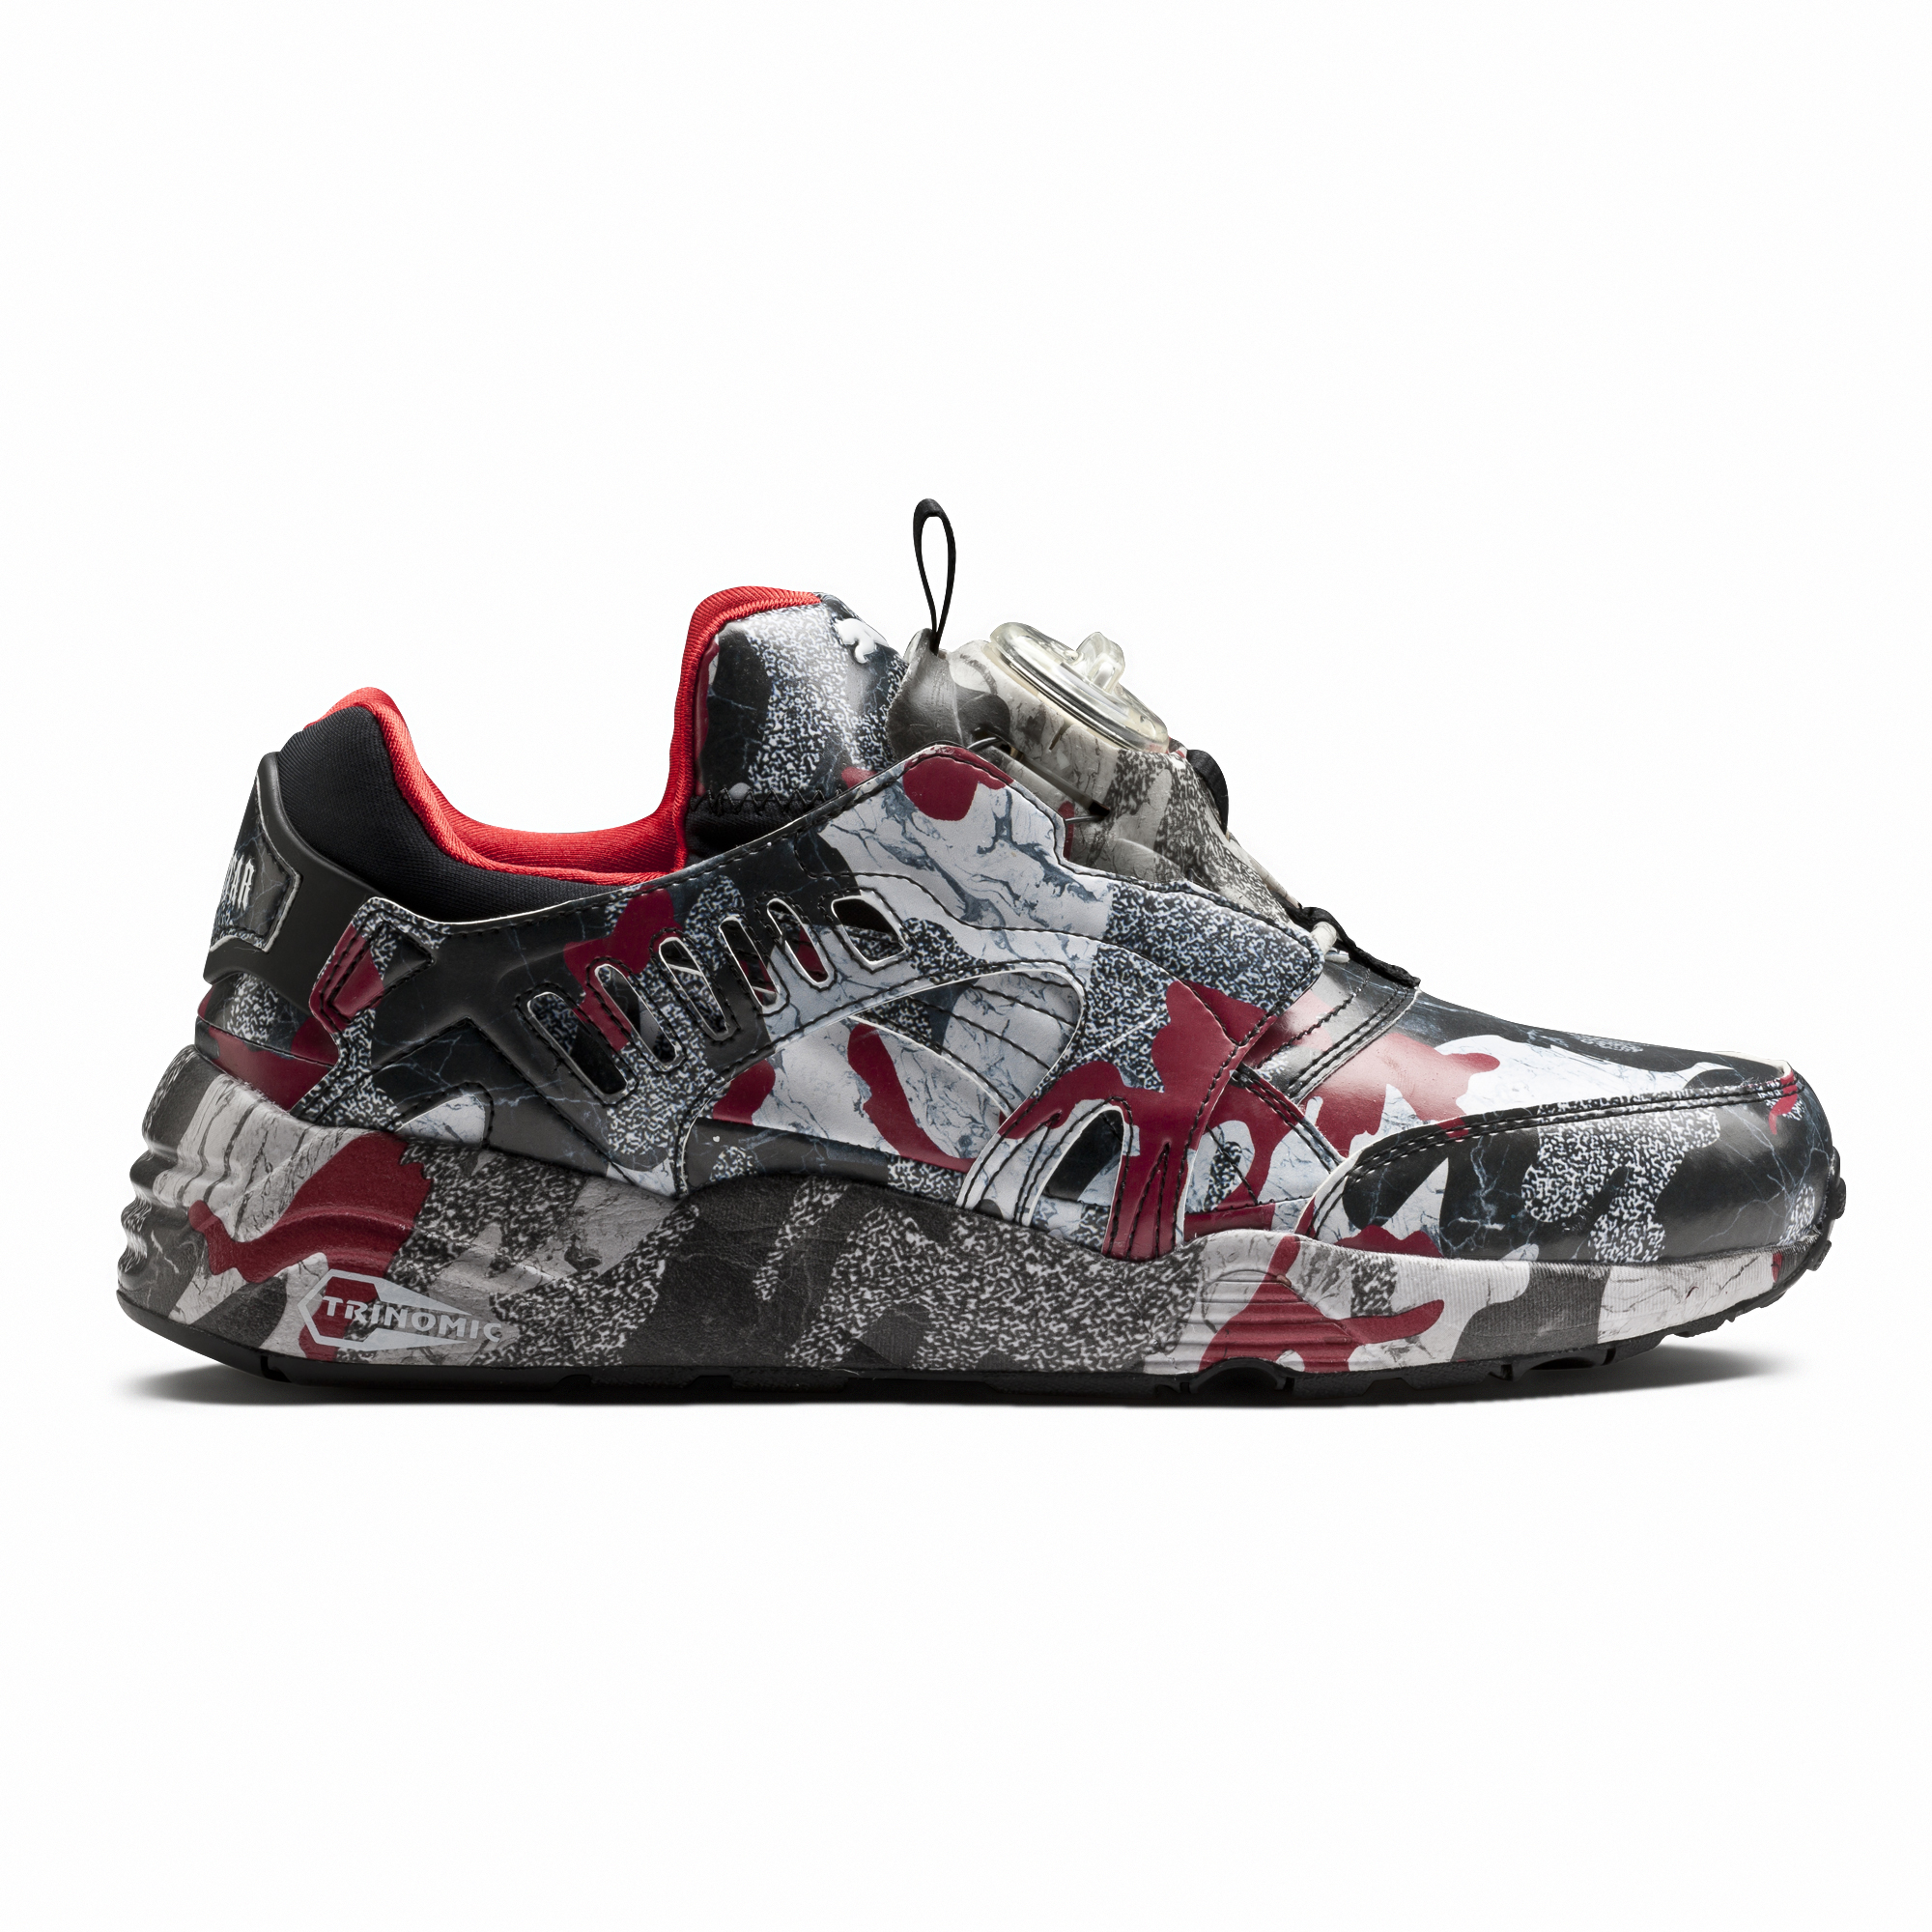 5943ba7eb51 PUMA s Exciting New Collaborations Are Finally Here - NYLON SINGAPORE